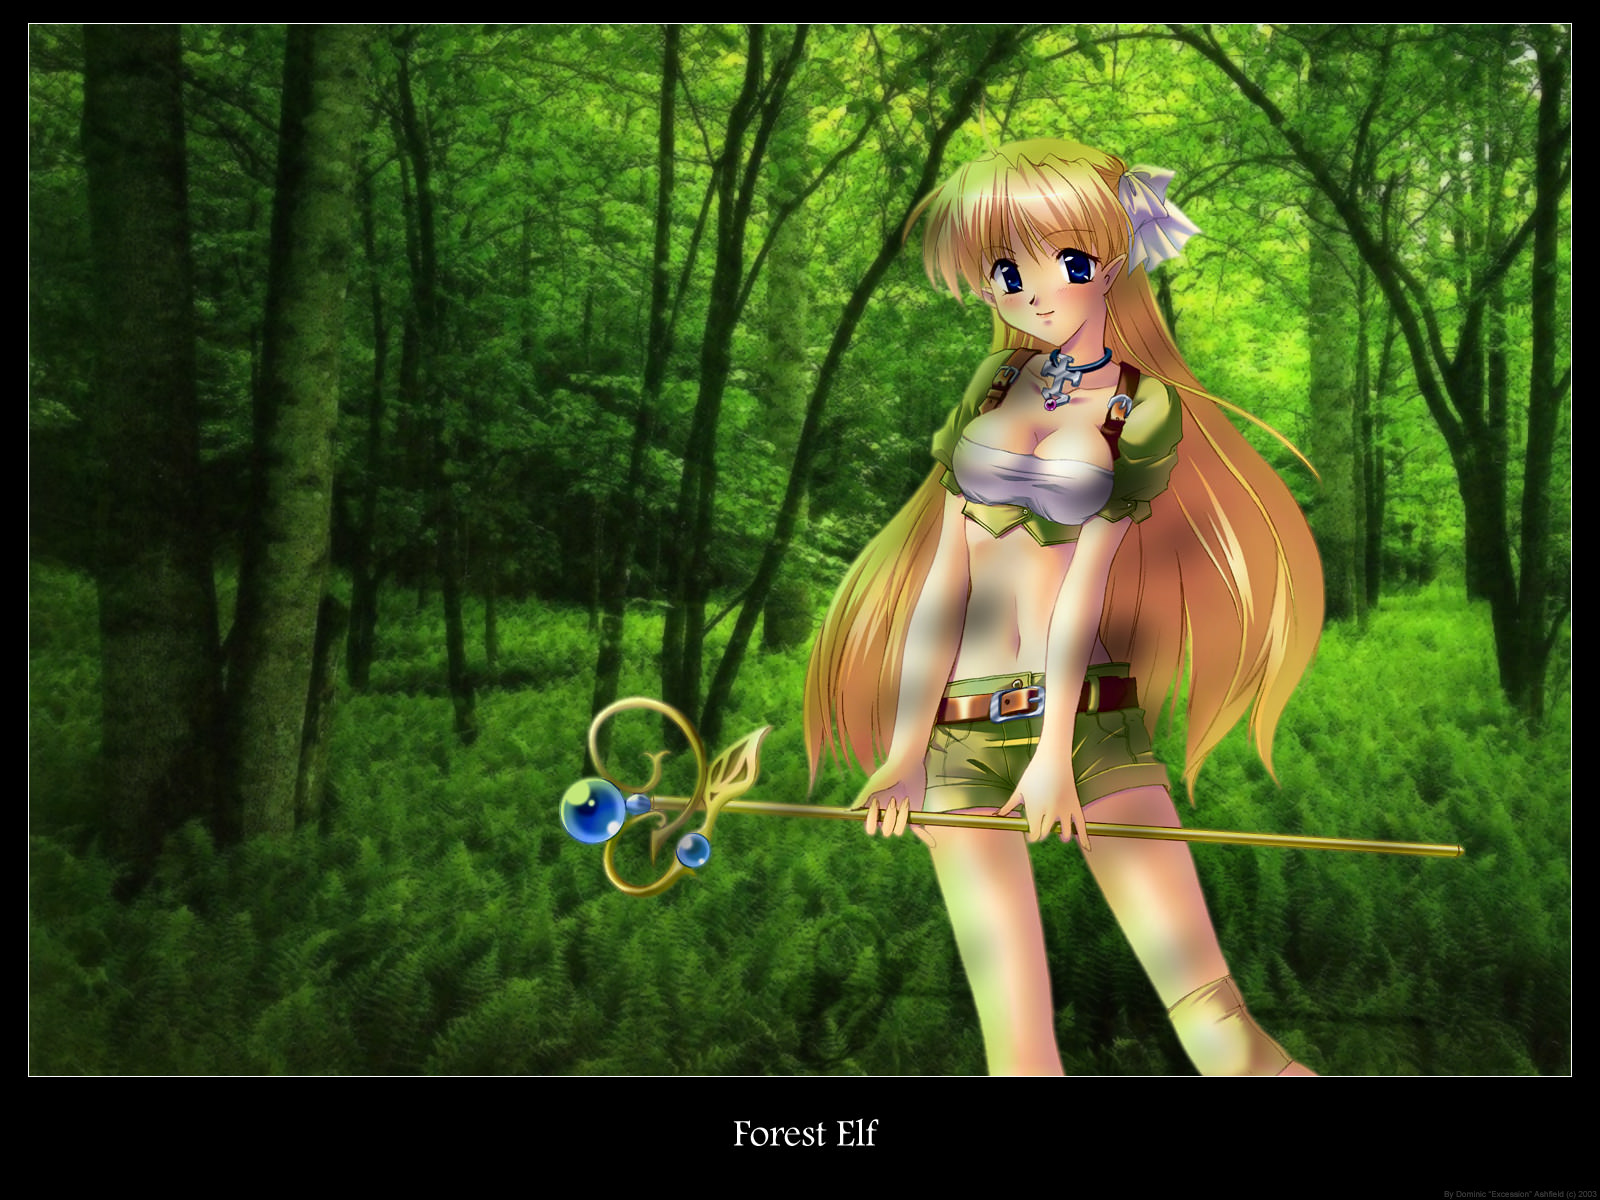 Anime elf girl in forest naked pic